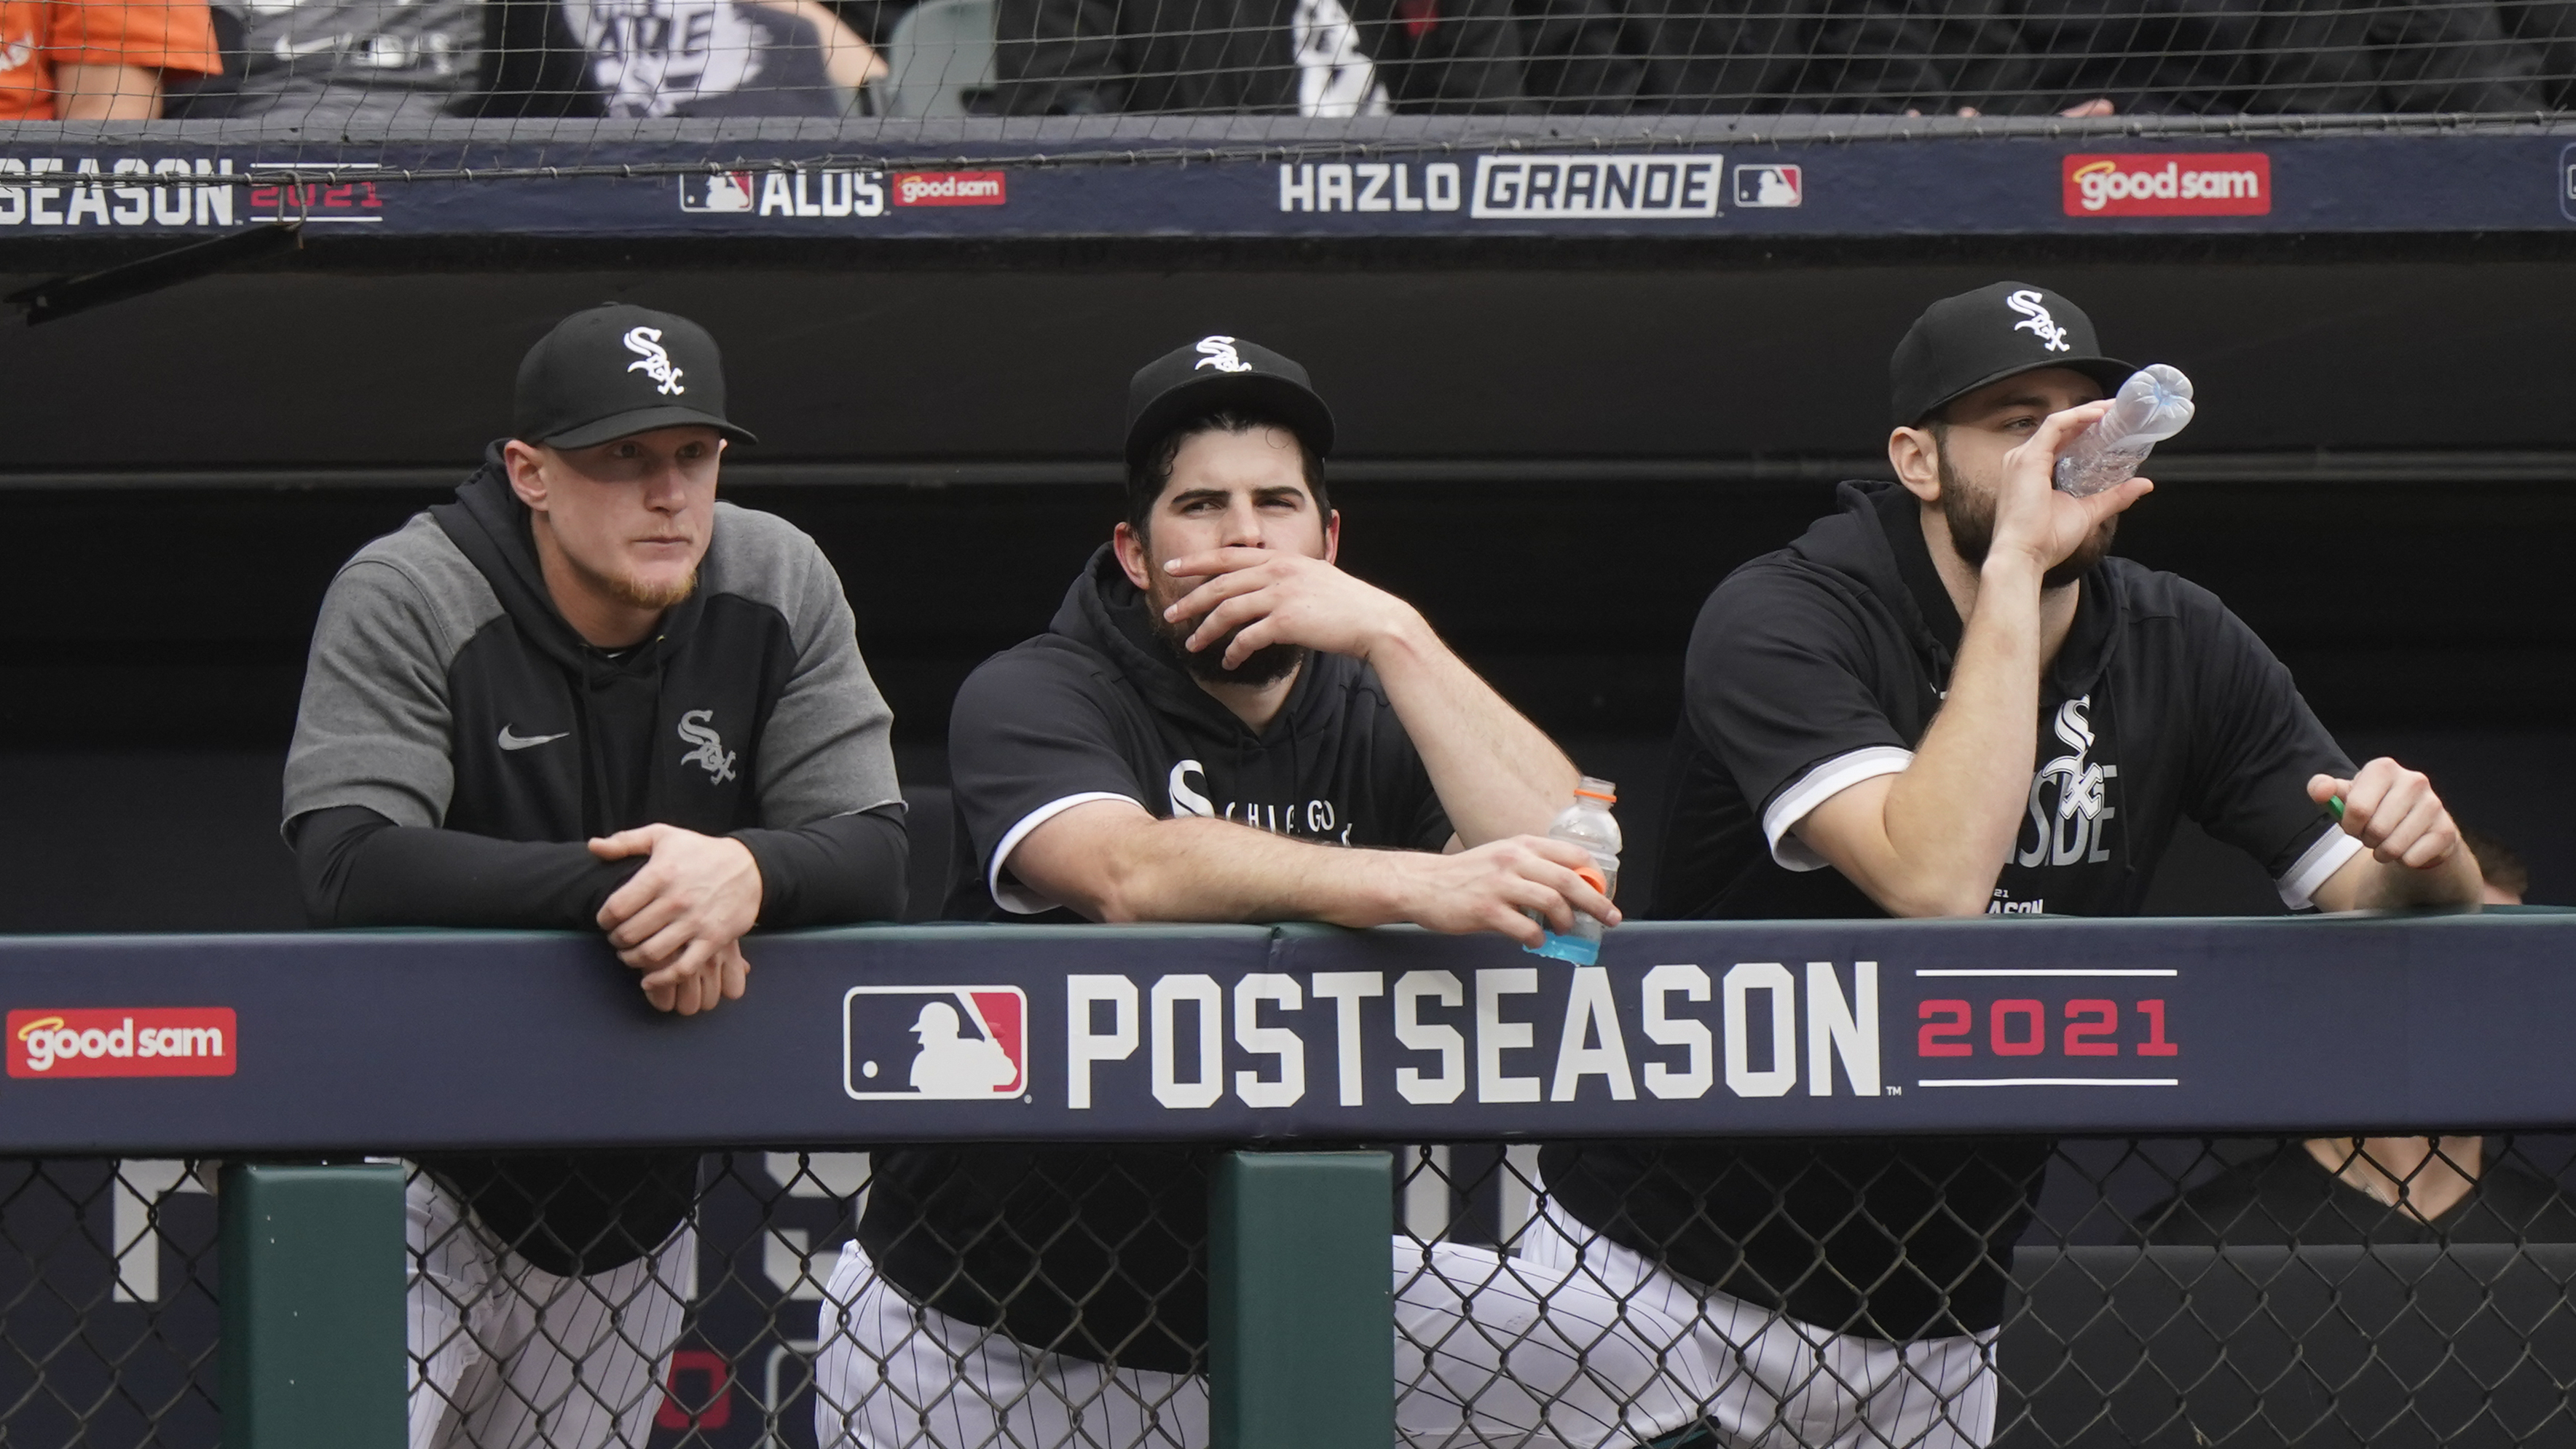 White Sox pitcher Carlos Rodon, center, watches from the dugout with Andrew Vaughn, left, and Lucas Giolito during the 10-1 Game 4 of the ALDS at Guaranteed Rate Field.